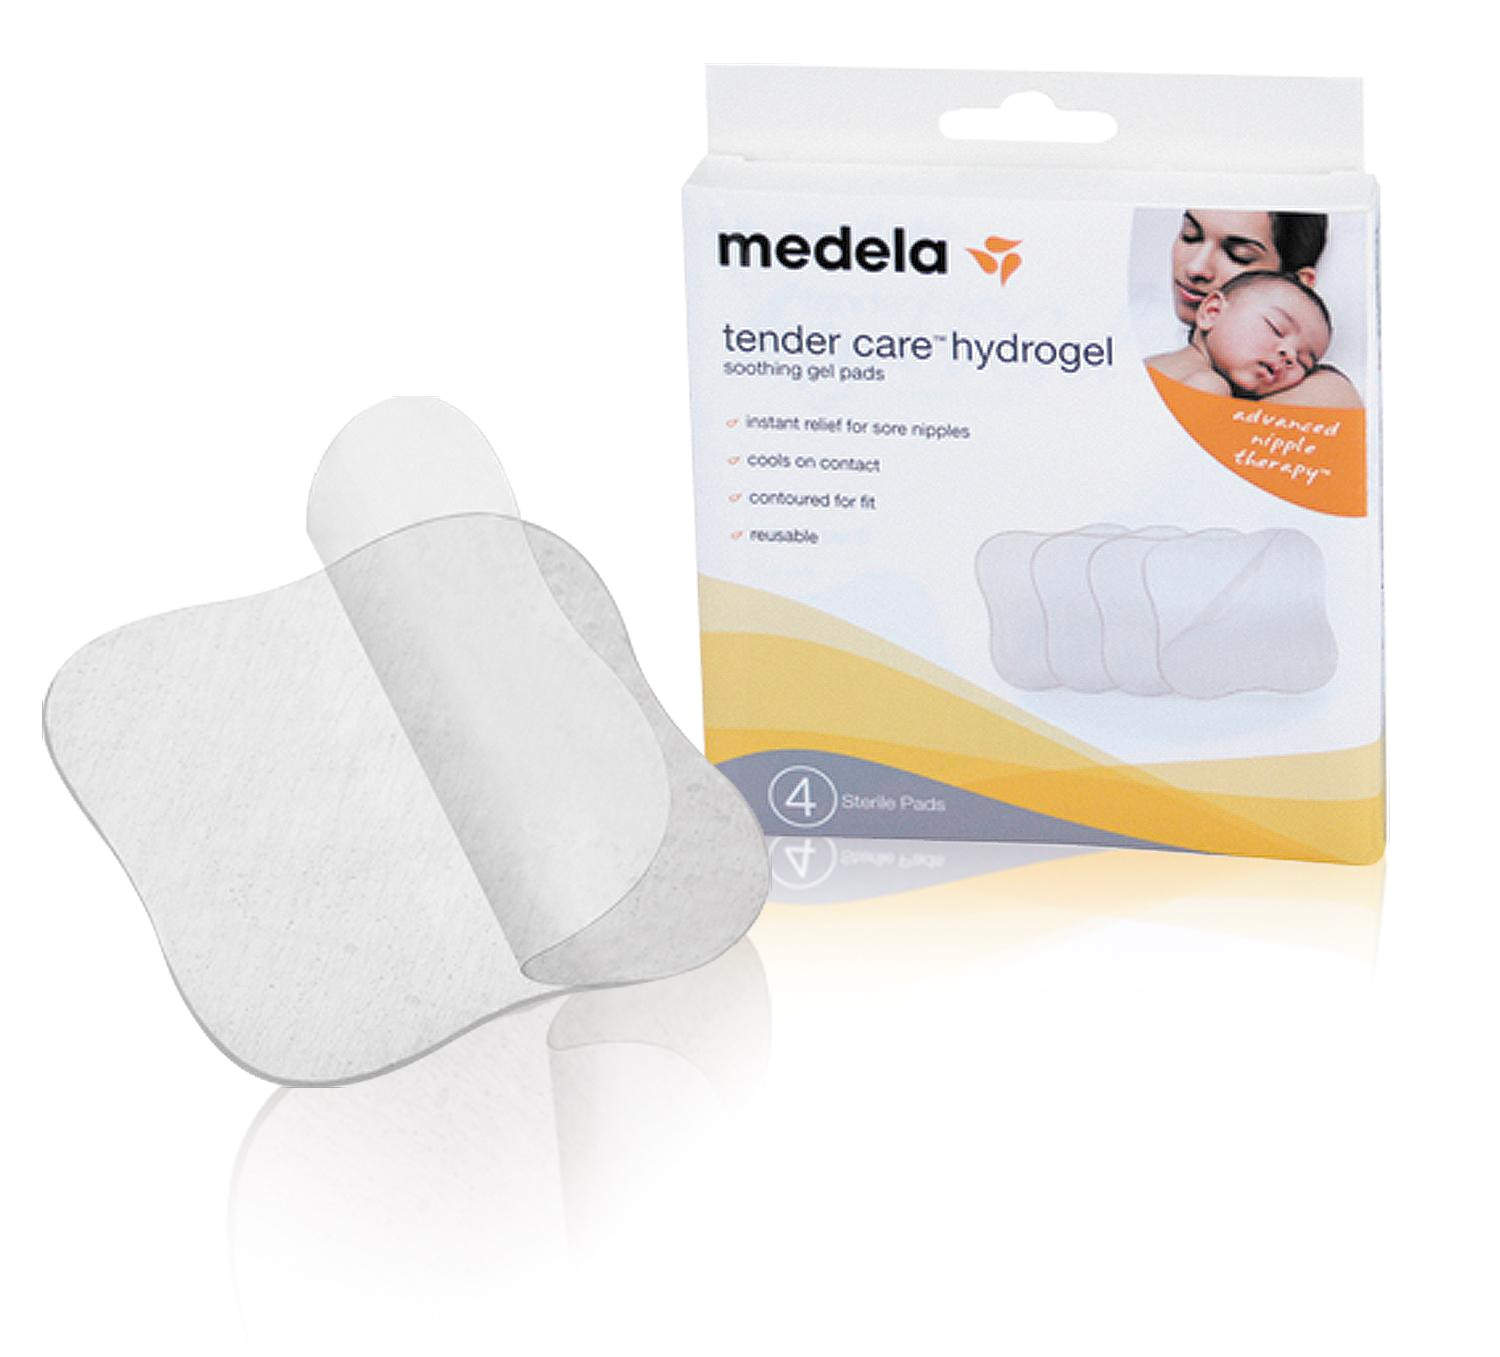 Best Breast Pads after Delivery Amazon Com Medela soothing Gel Pads for Breastfeeding 4 Count